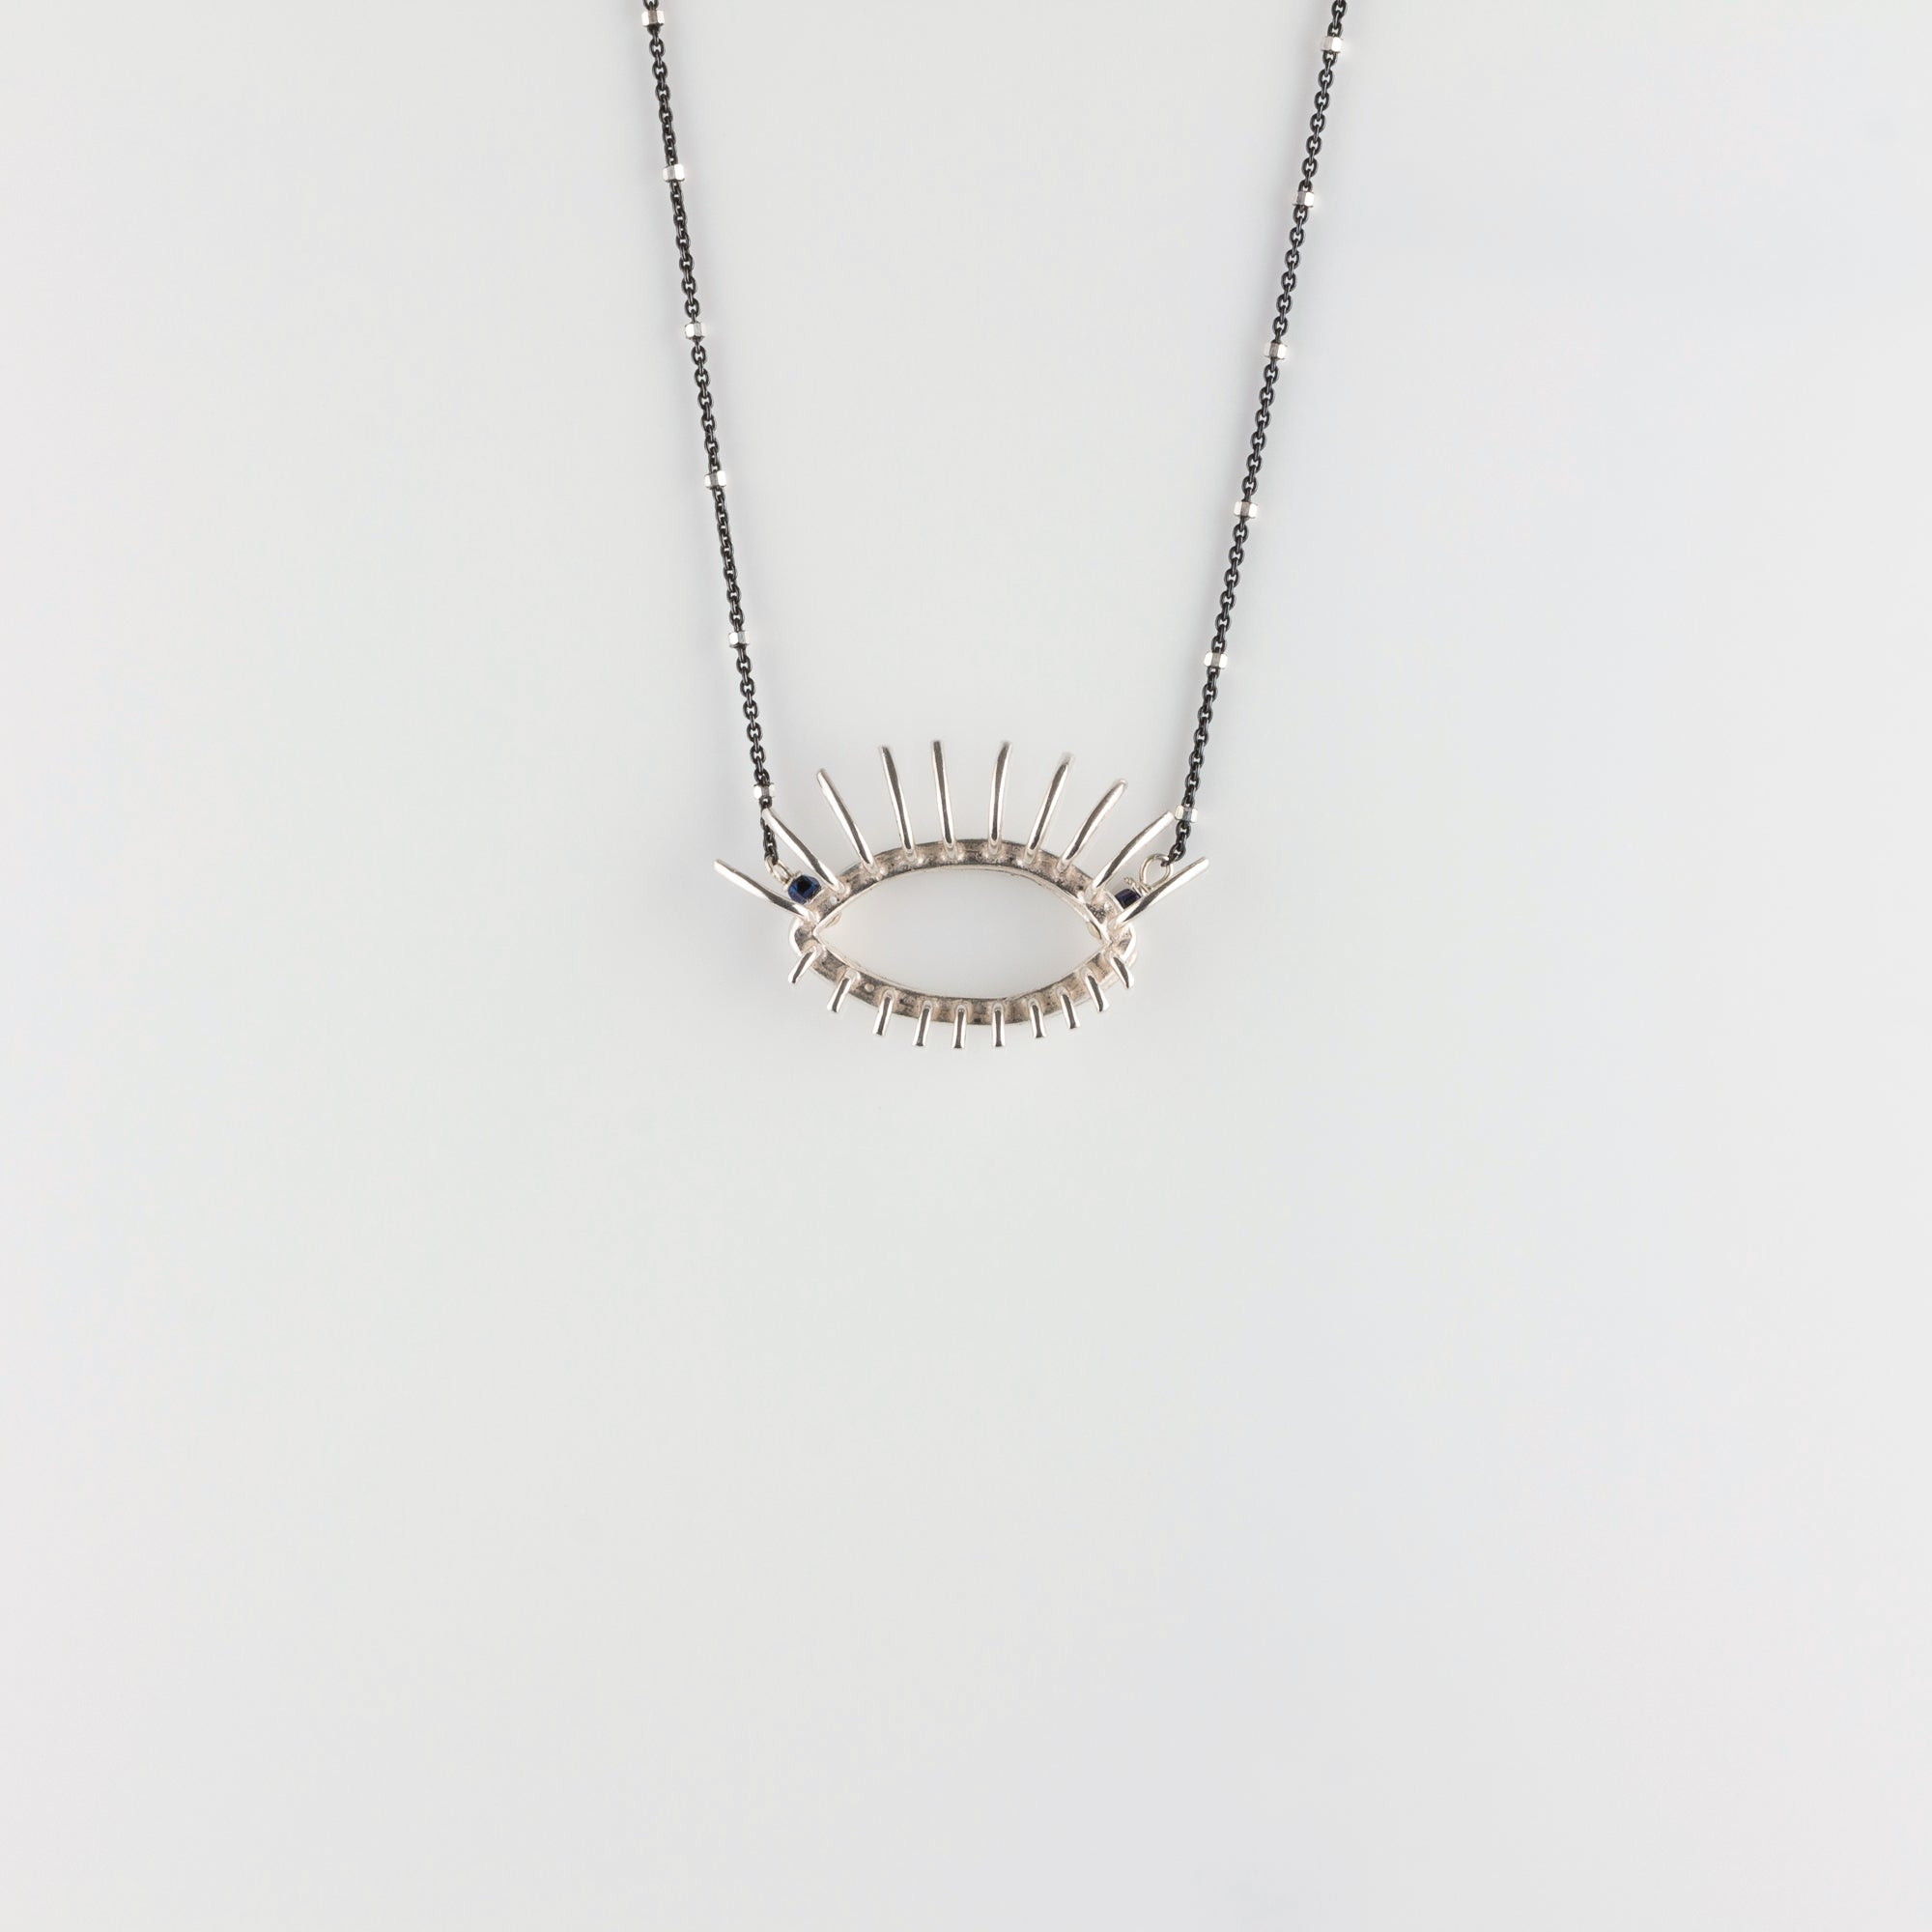 """20/20"" // SILVER NECKLACE"